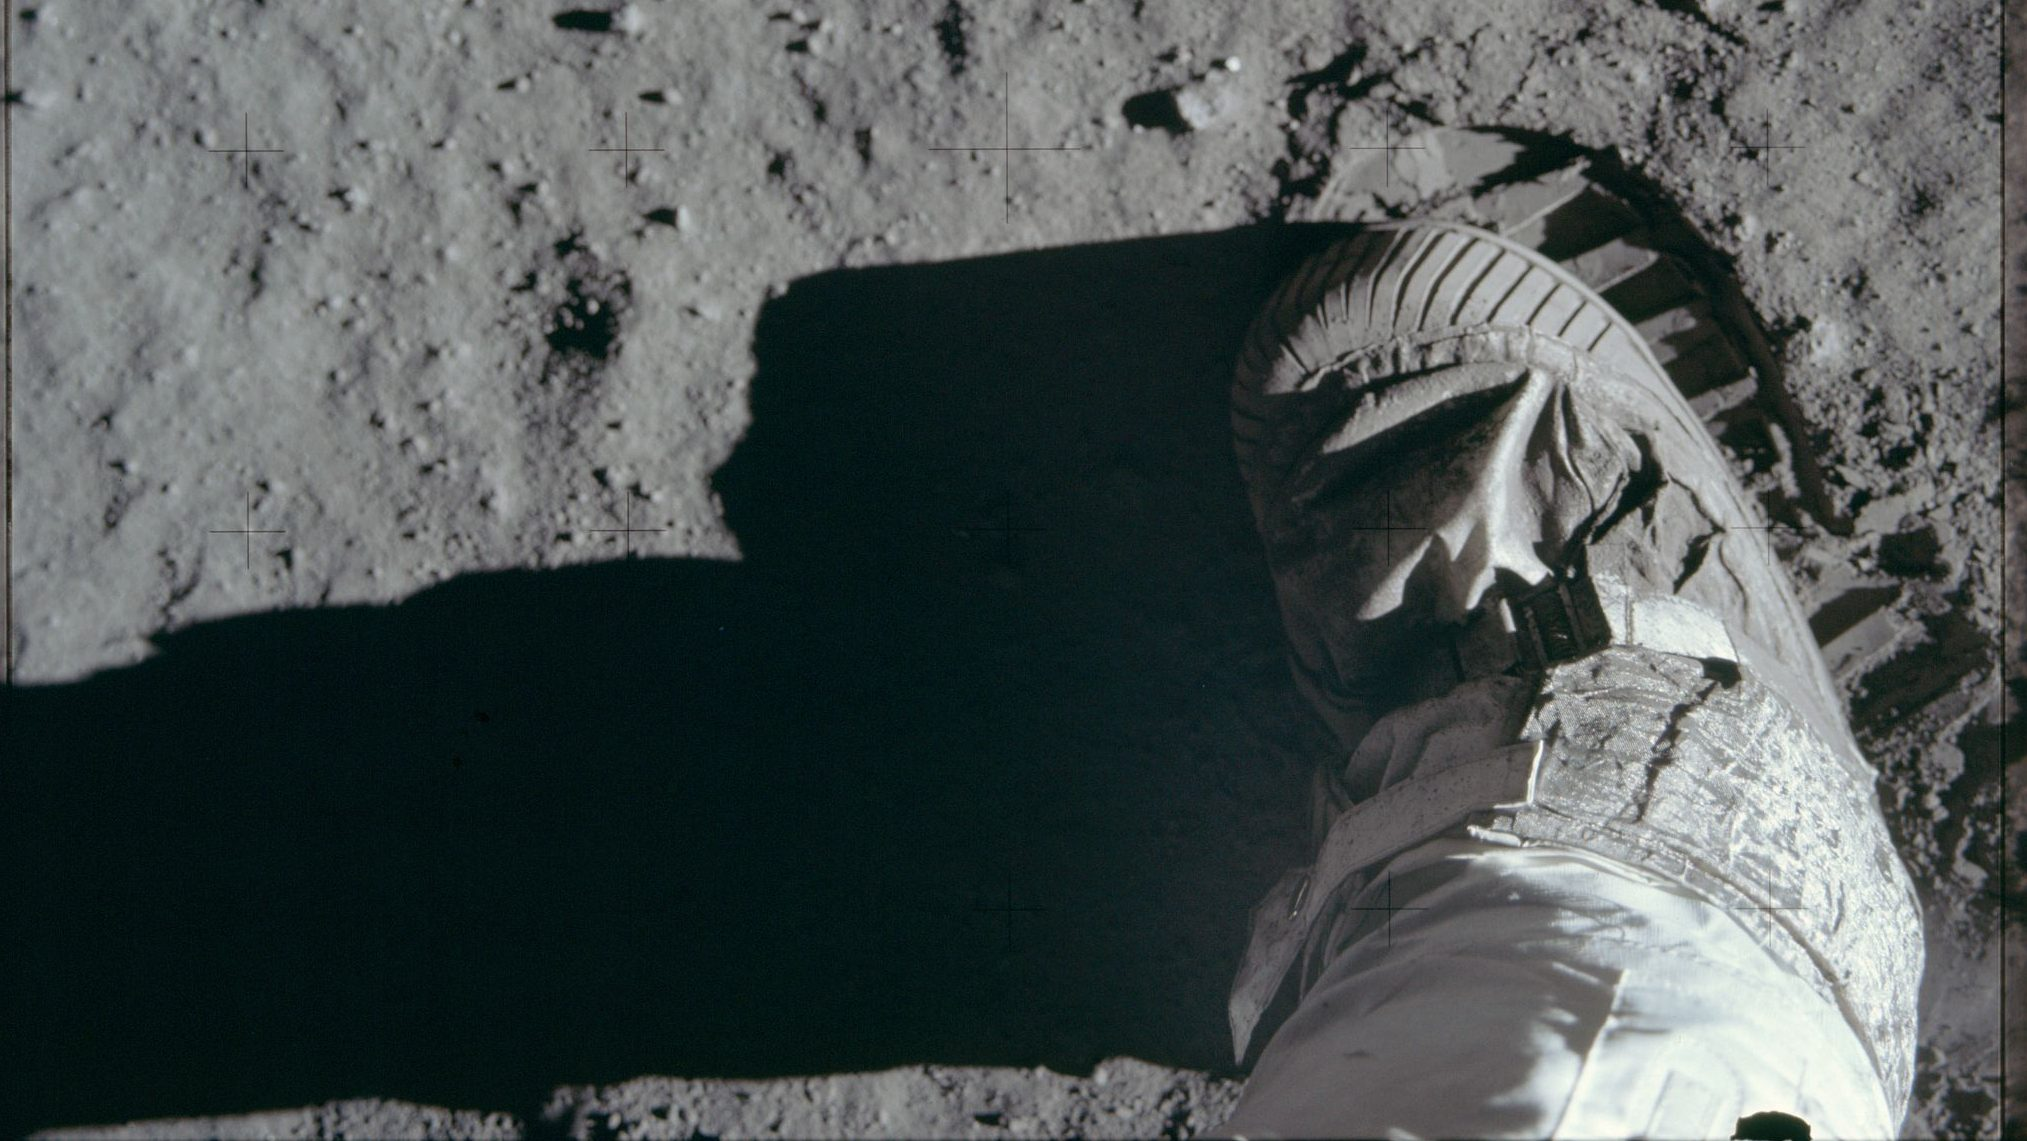 qz.com - Johnny Simon - Extremely high-res outtakes from Apollo 11's 1969 moon landing